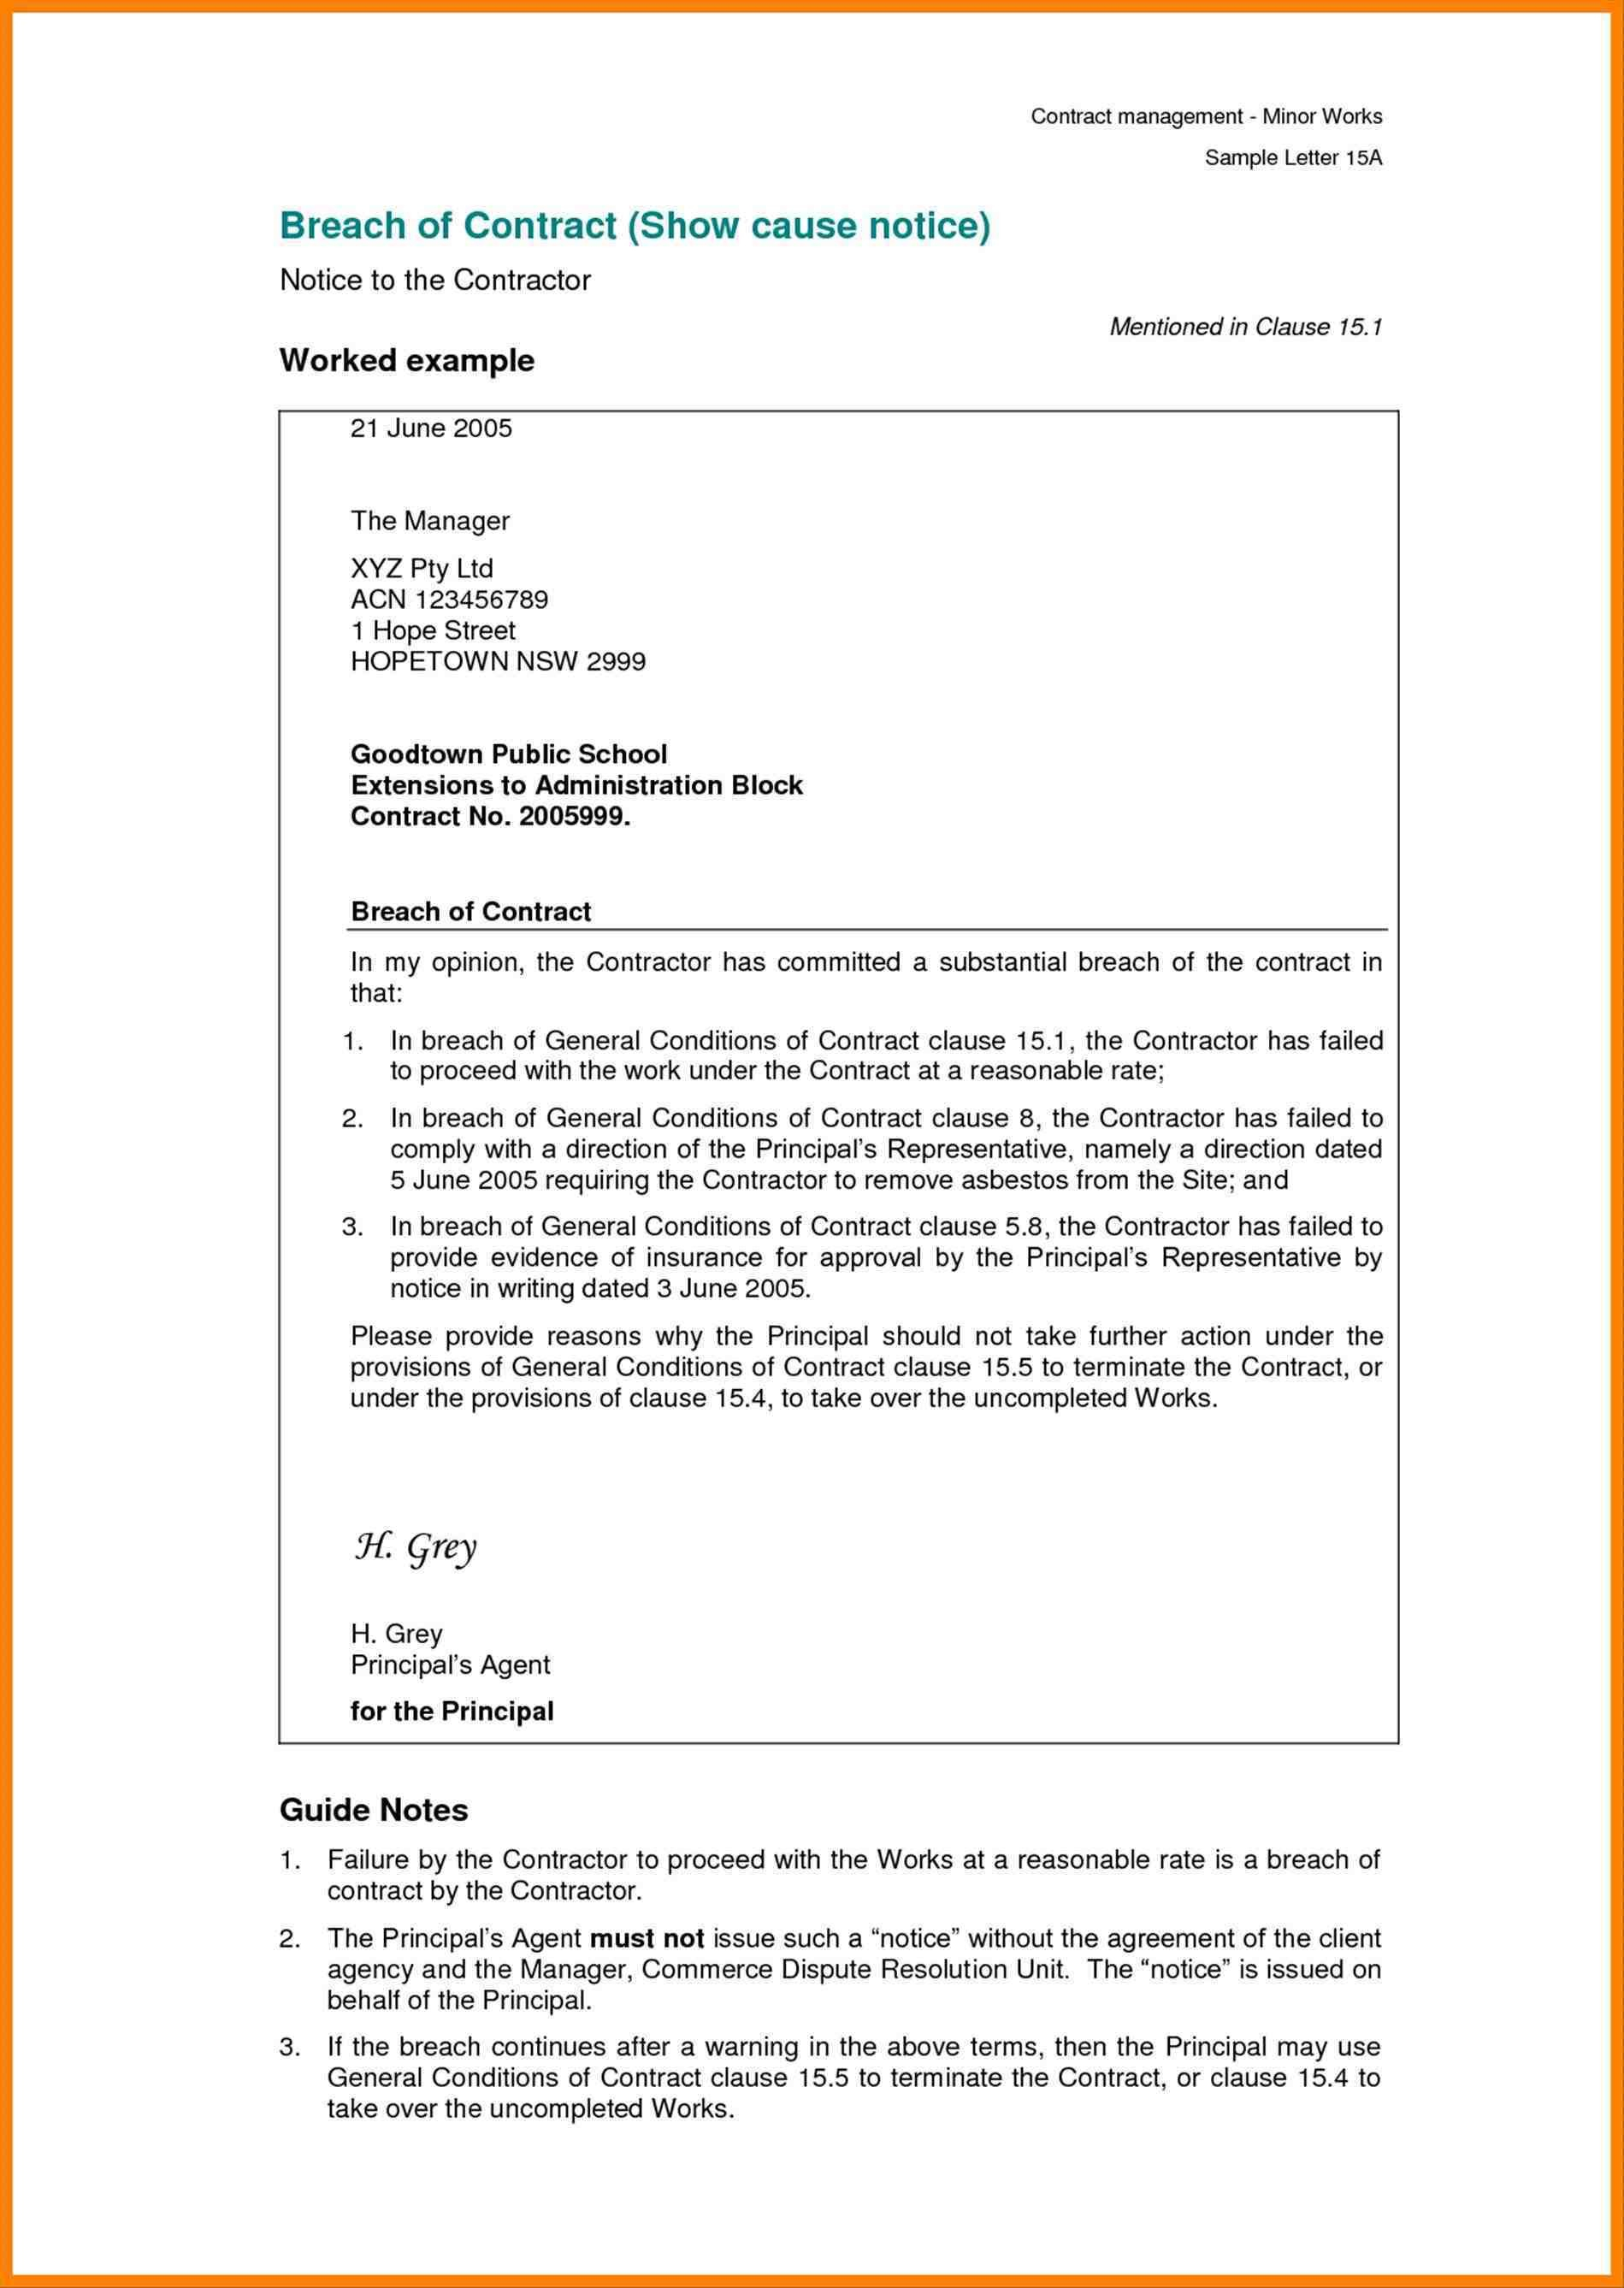 Free Breach Of Contract Letter Template - Free Cover Letter Templates Breach Of Contract Letter